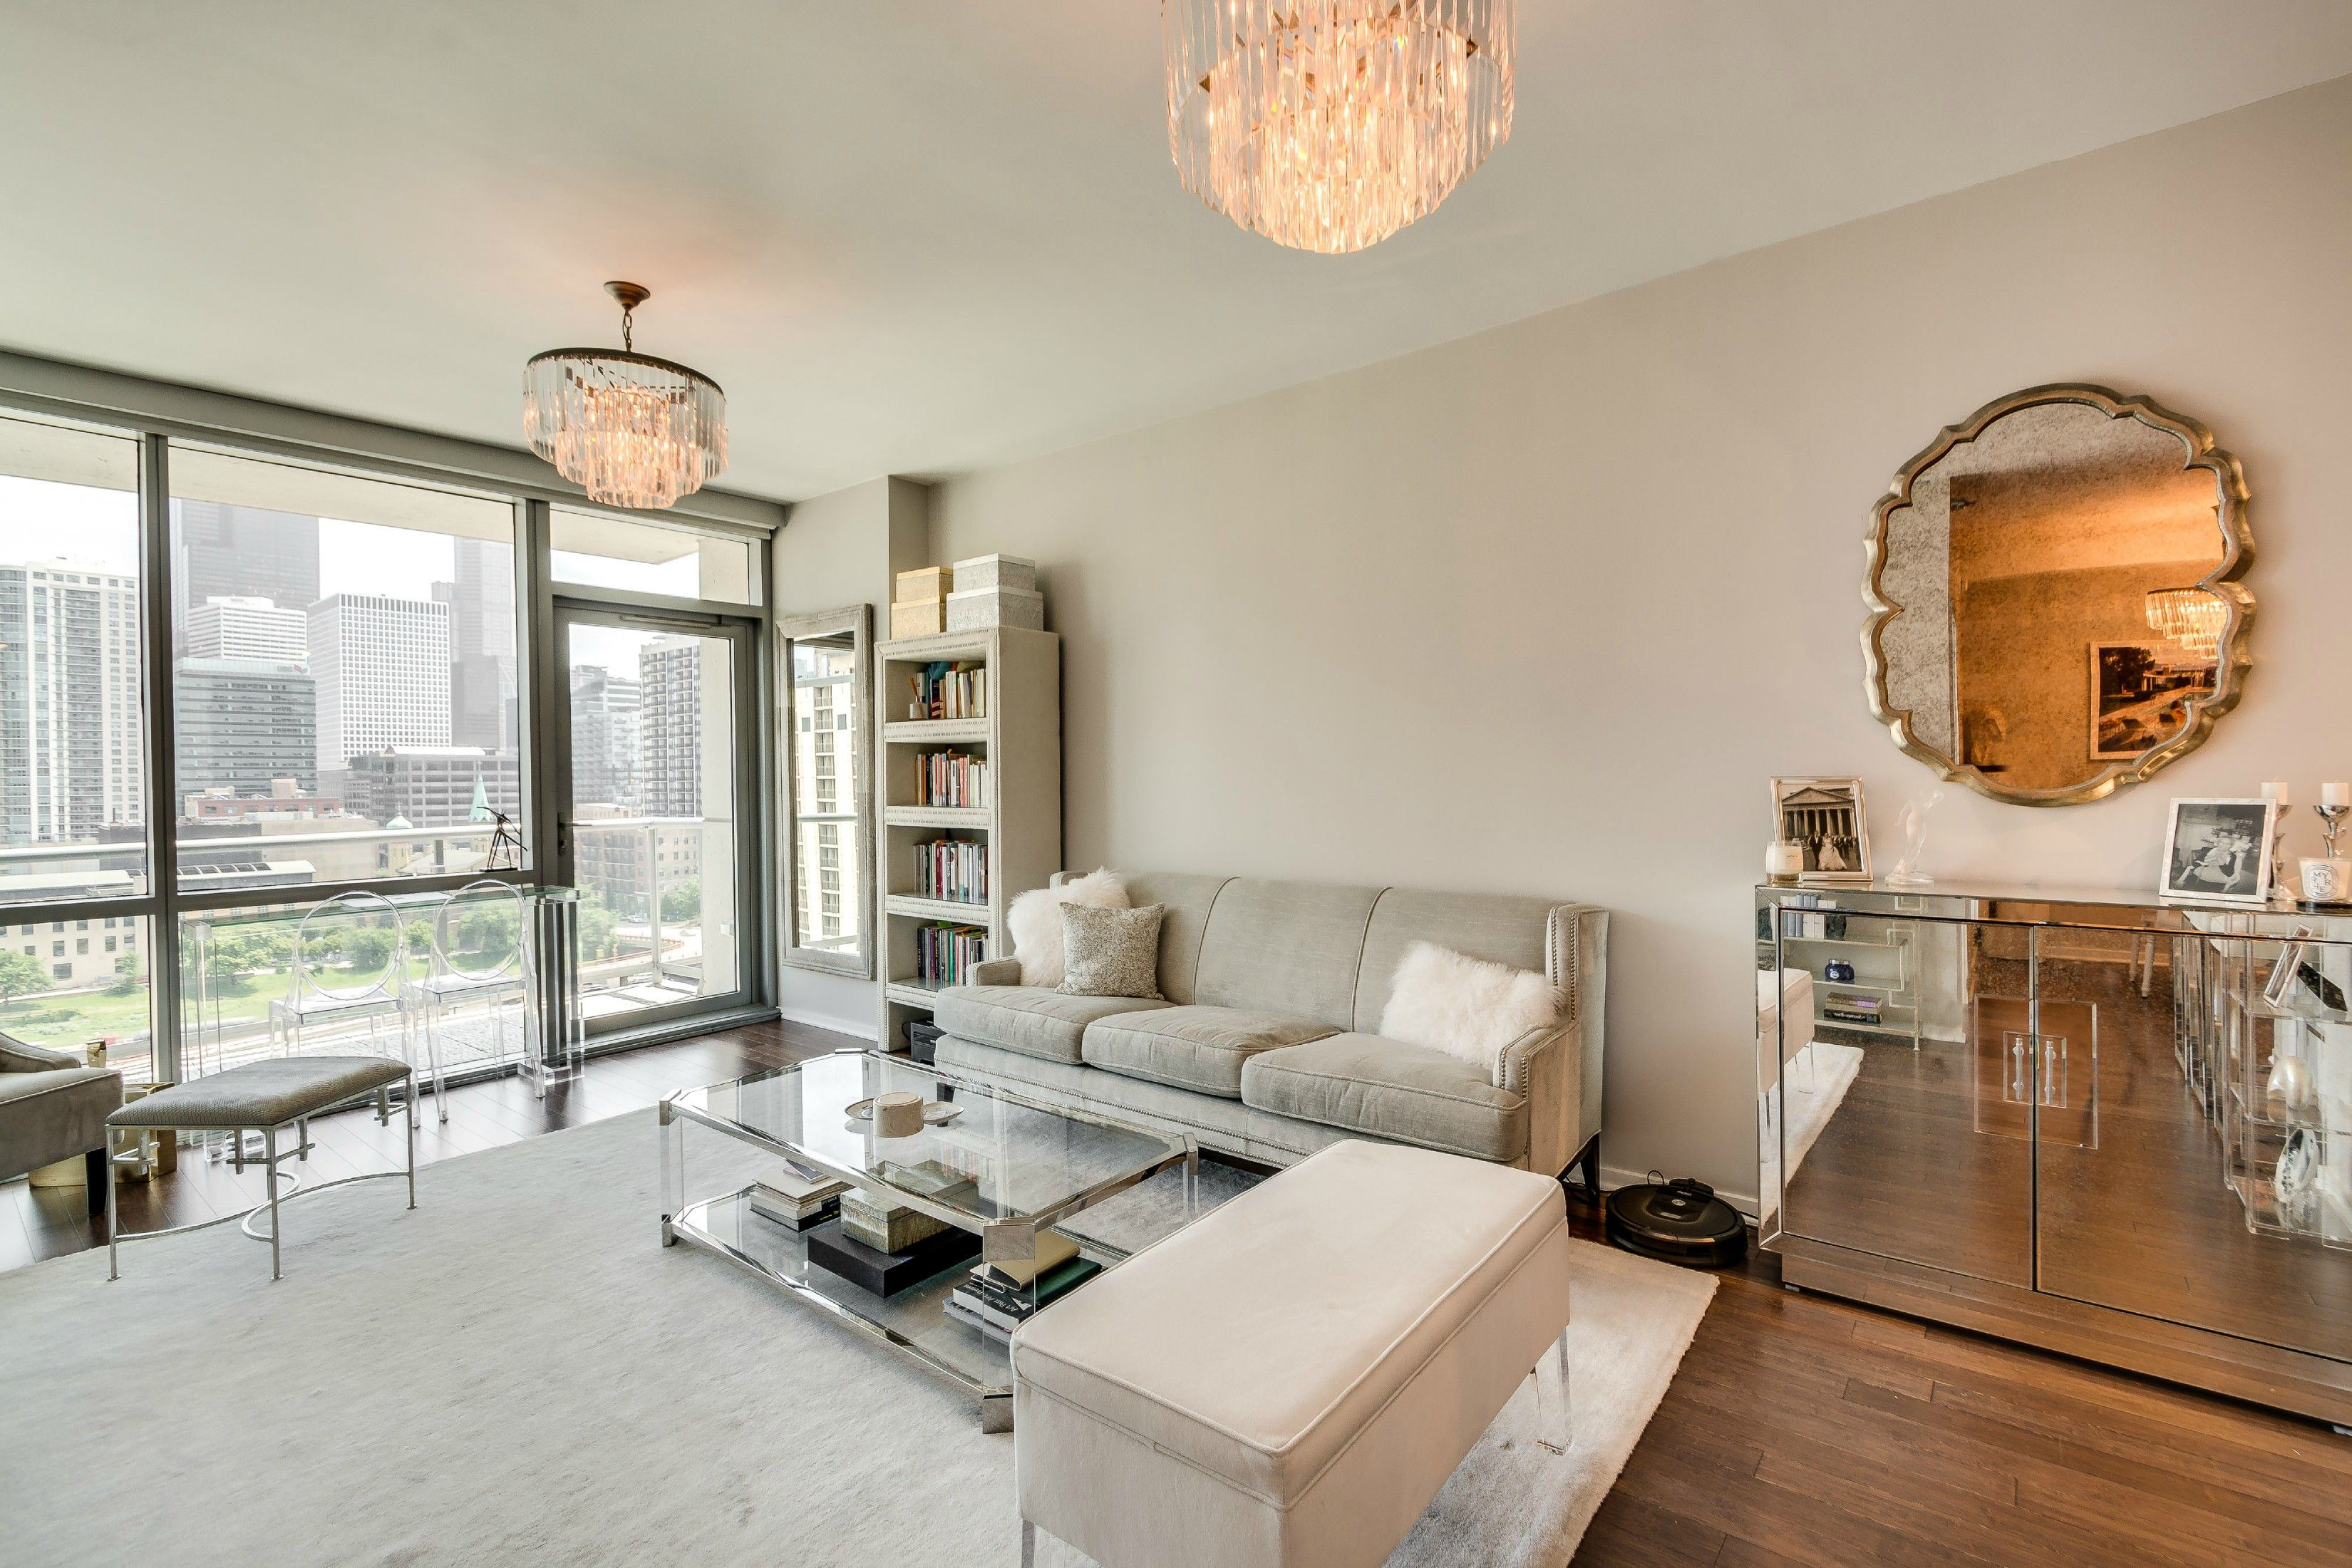 123 S Green St Chicago Il 60607 Modern And Contemporary